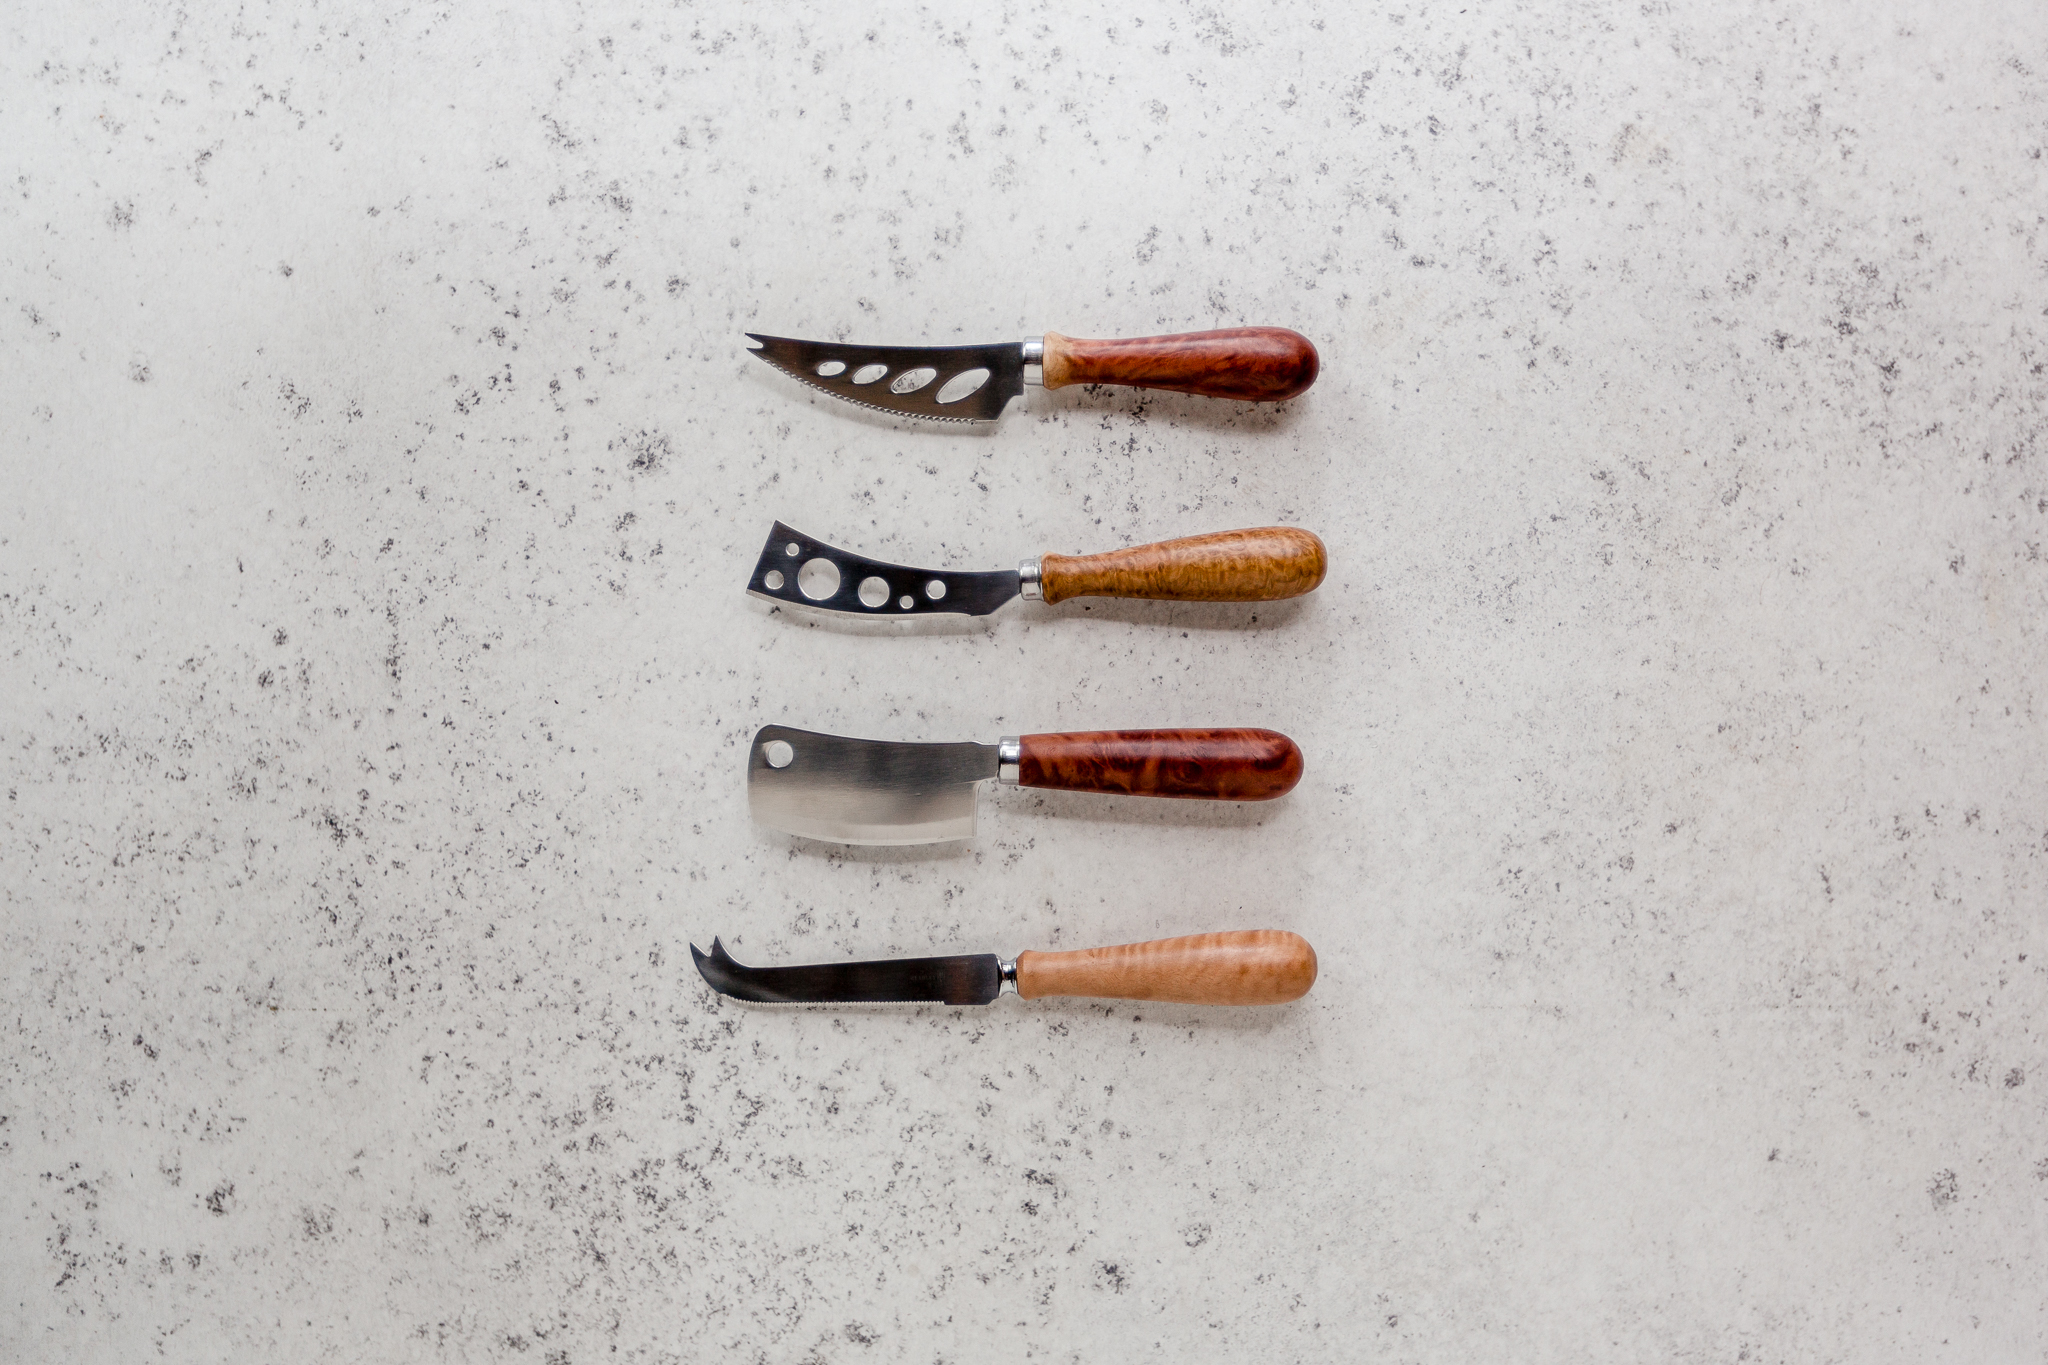 KNIVES - Our knives are made from high quality stainless steel and feature a handcrafted timber handle. The modern design of our knives complements all table settings and makes a stunning addition to your cutlery set. We recommend pairing our knives with one of our serving boards to make the perfect entertaining set.